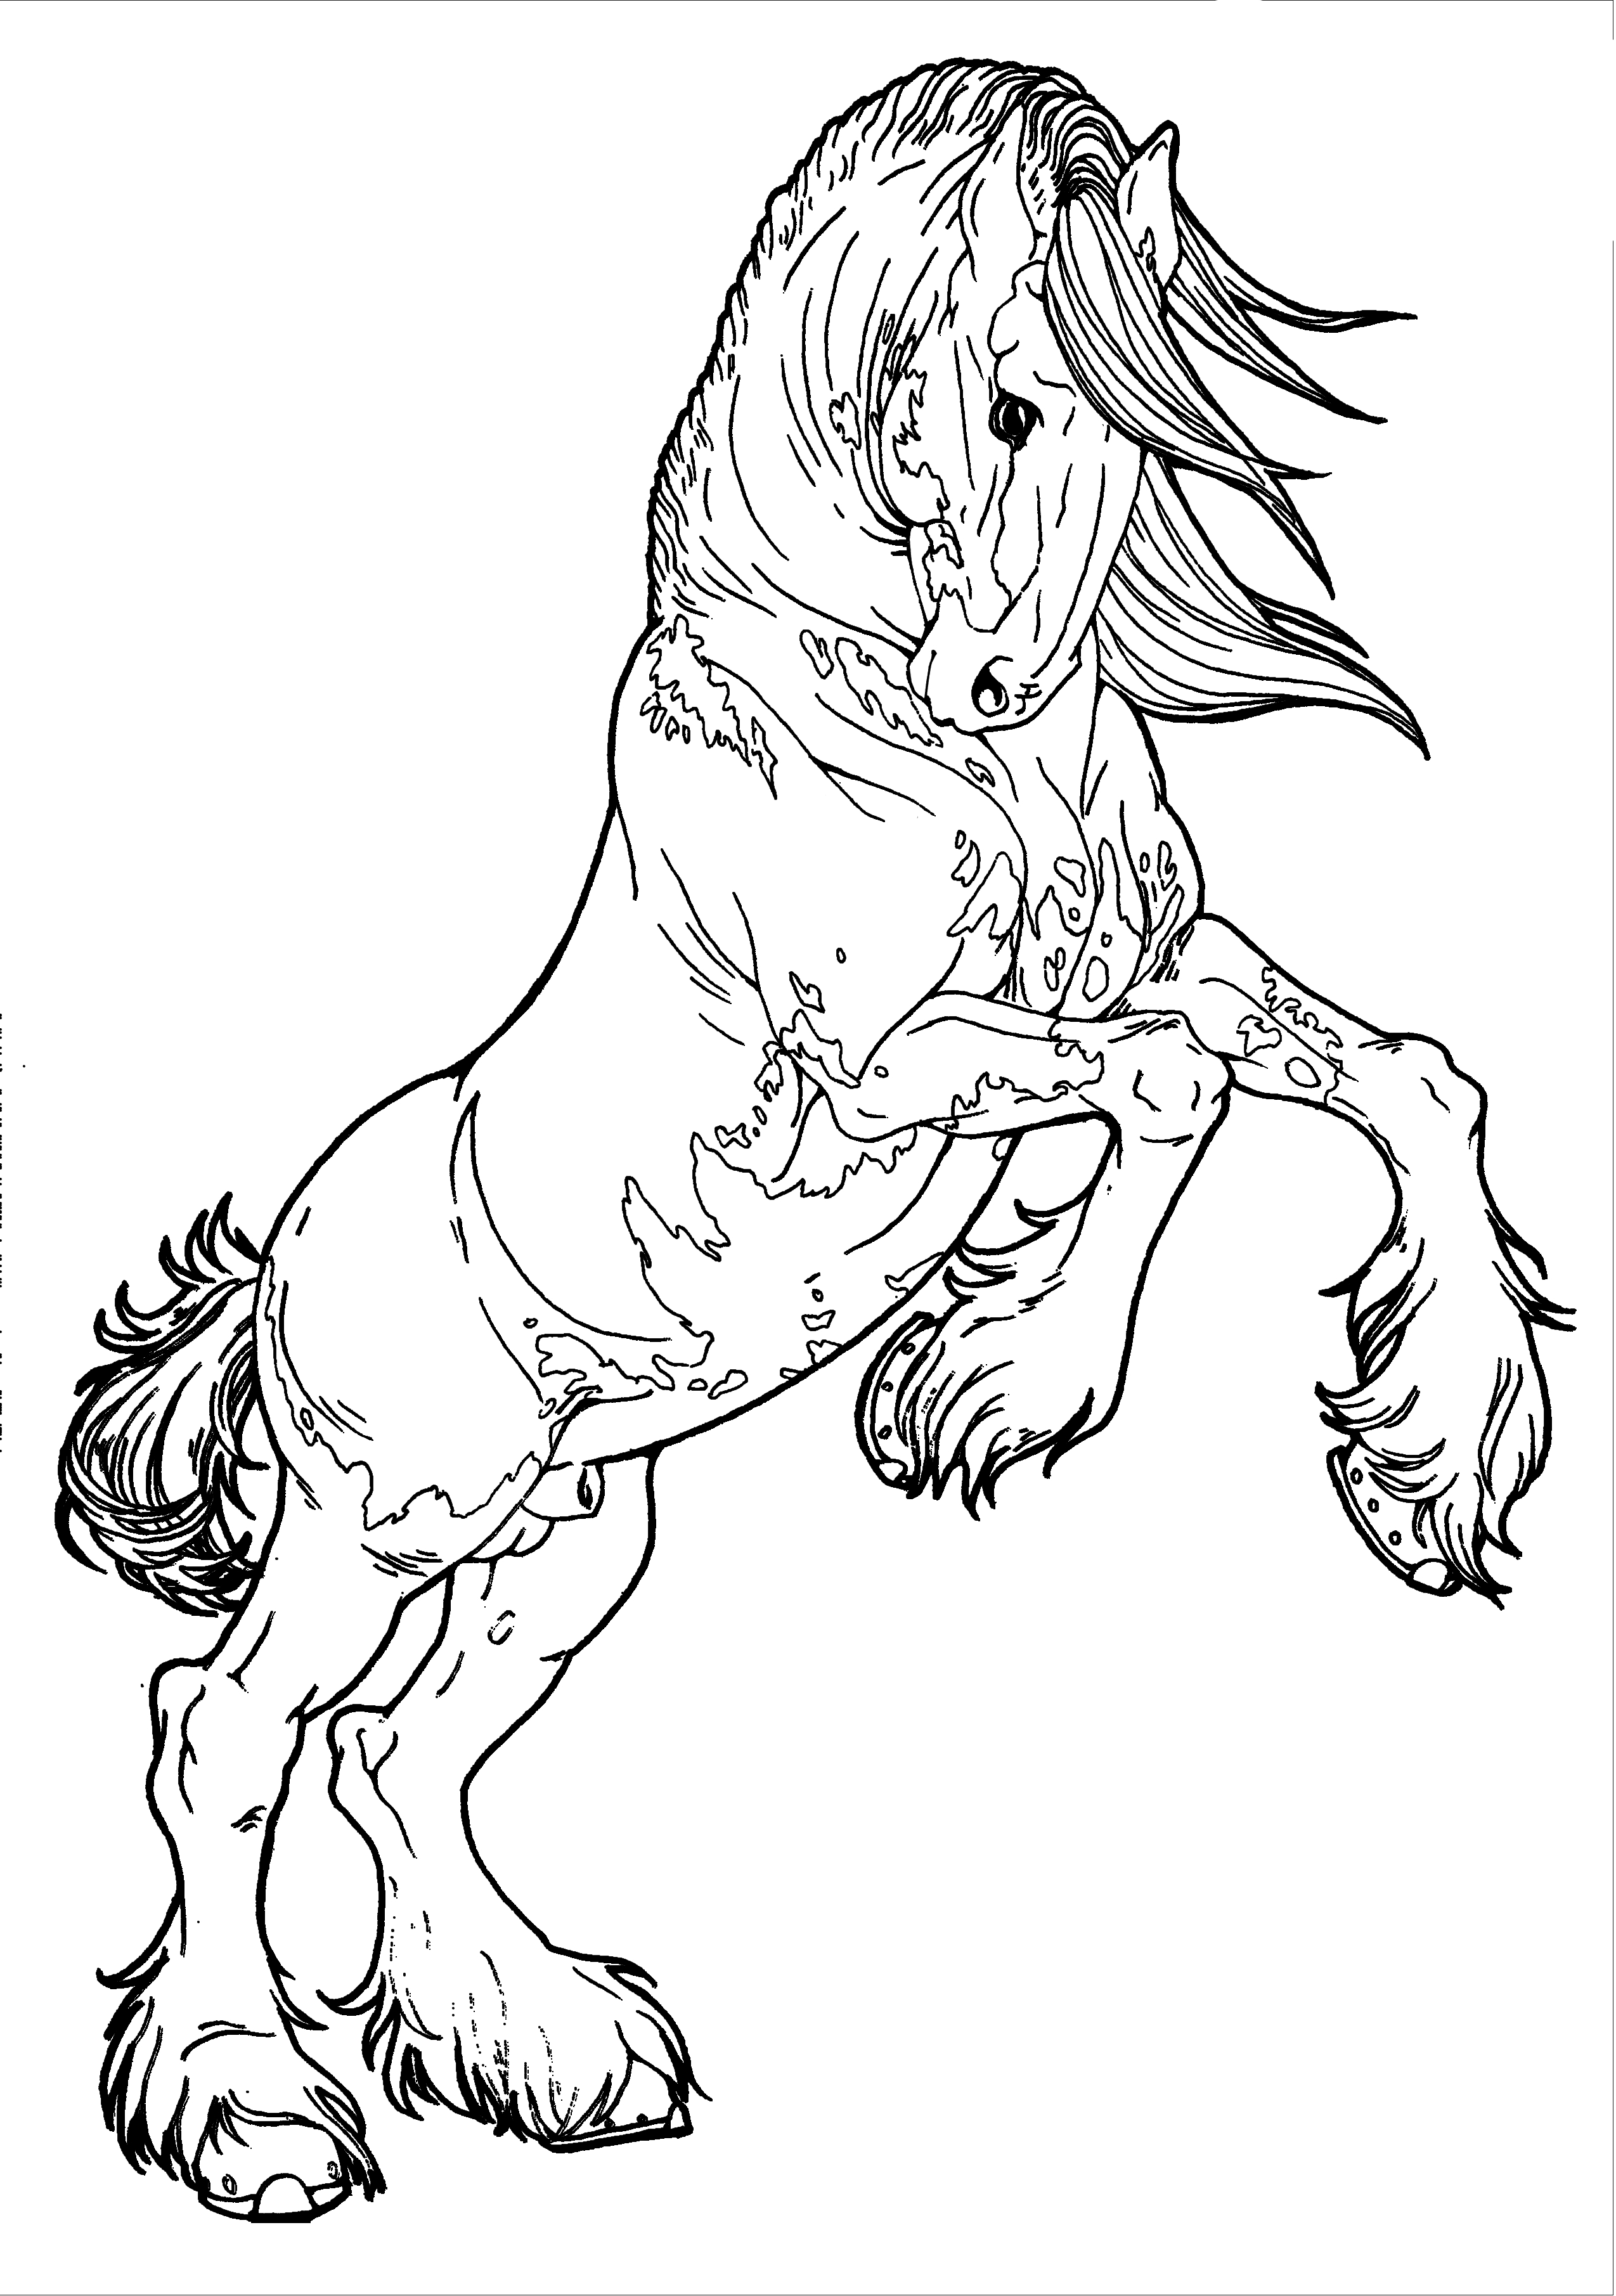 Friesian horse printing pictures coloring pages ~ Horse Rearing Up Drawing at GetDrawings.com | Free for ...